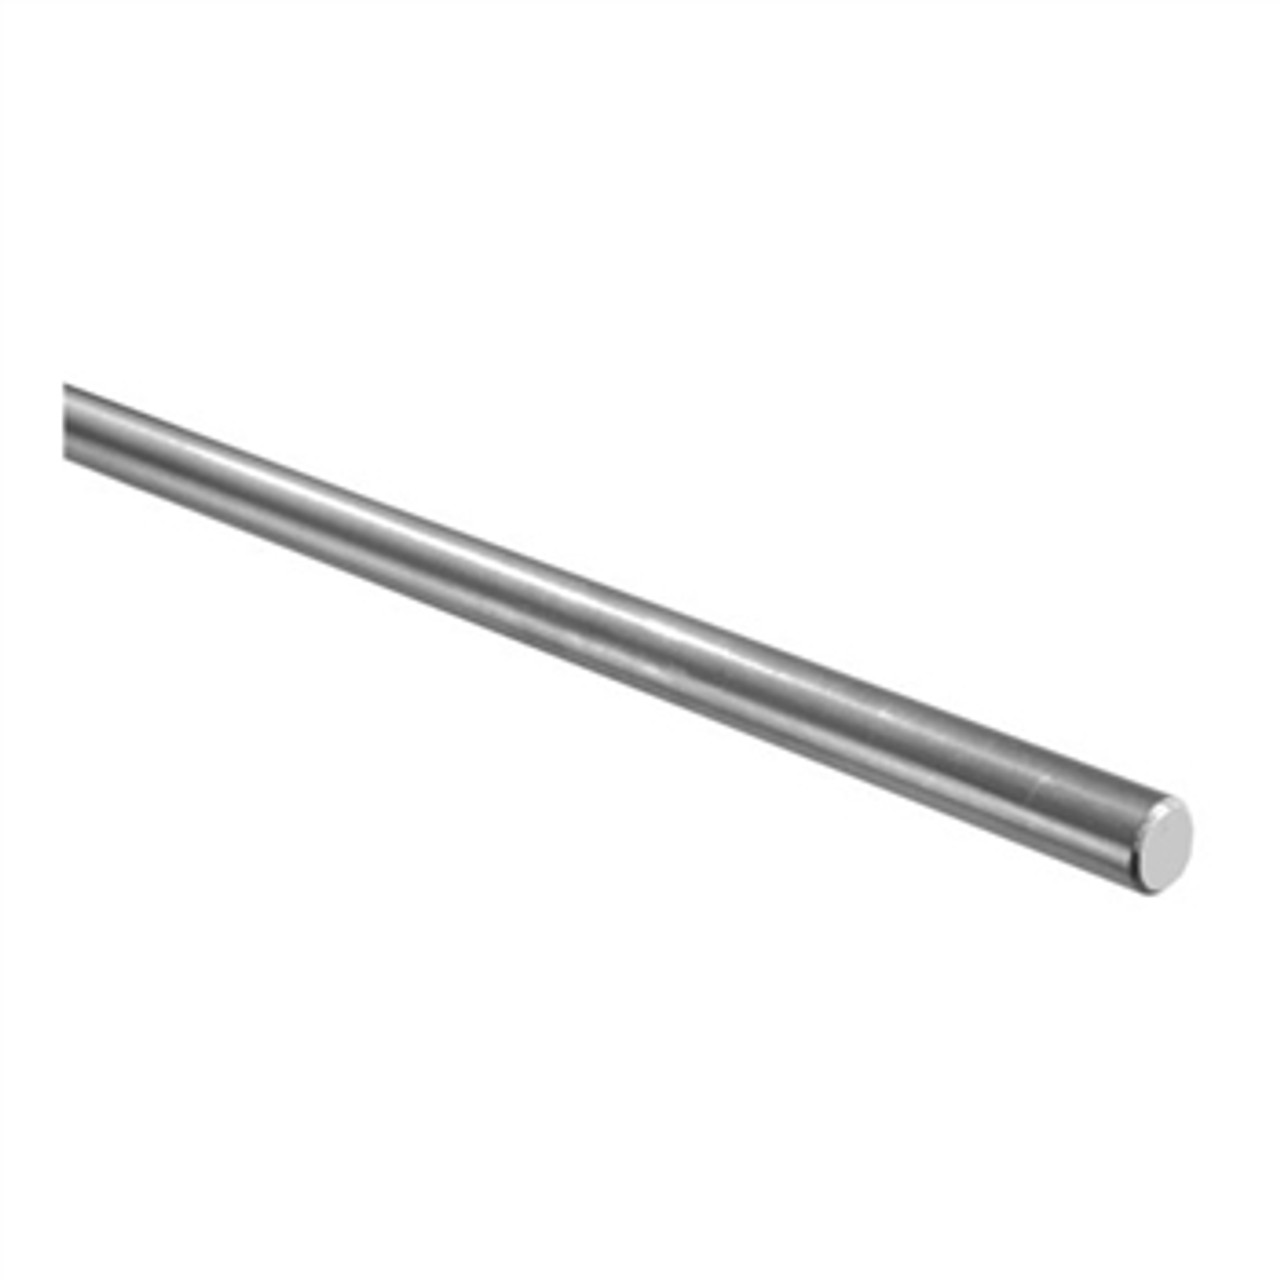 """E0052/6000 5/16"""" Stainless Round Bar, 20'"""